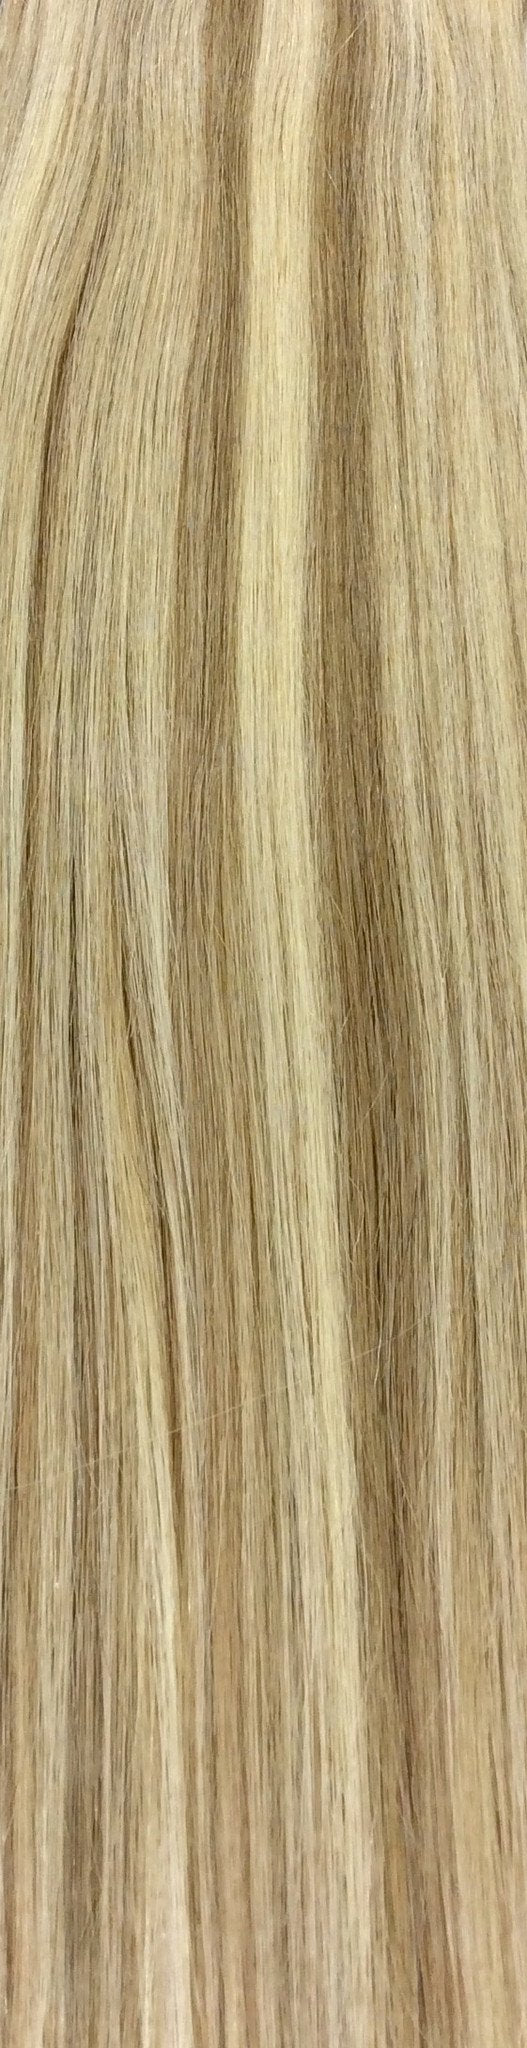 "18"" 100% Human Hair 7pcs Clip-In Color P8/613"